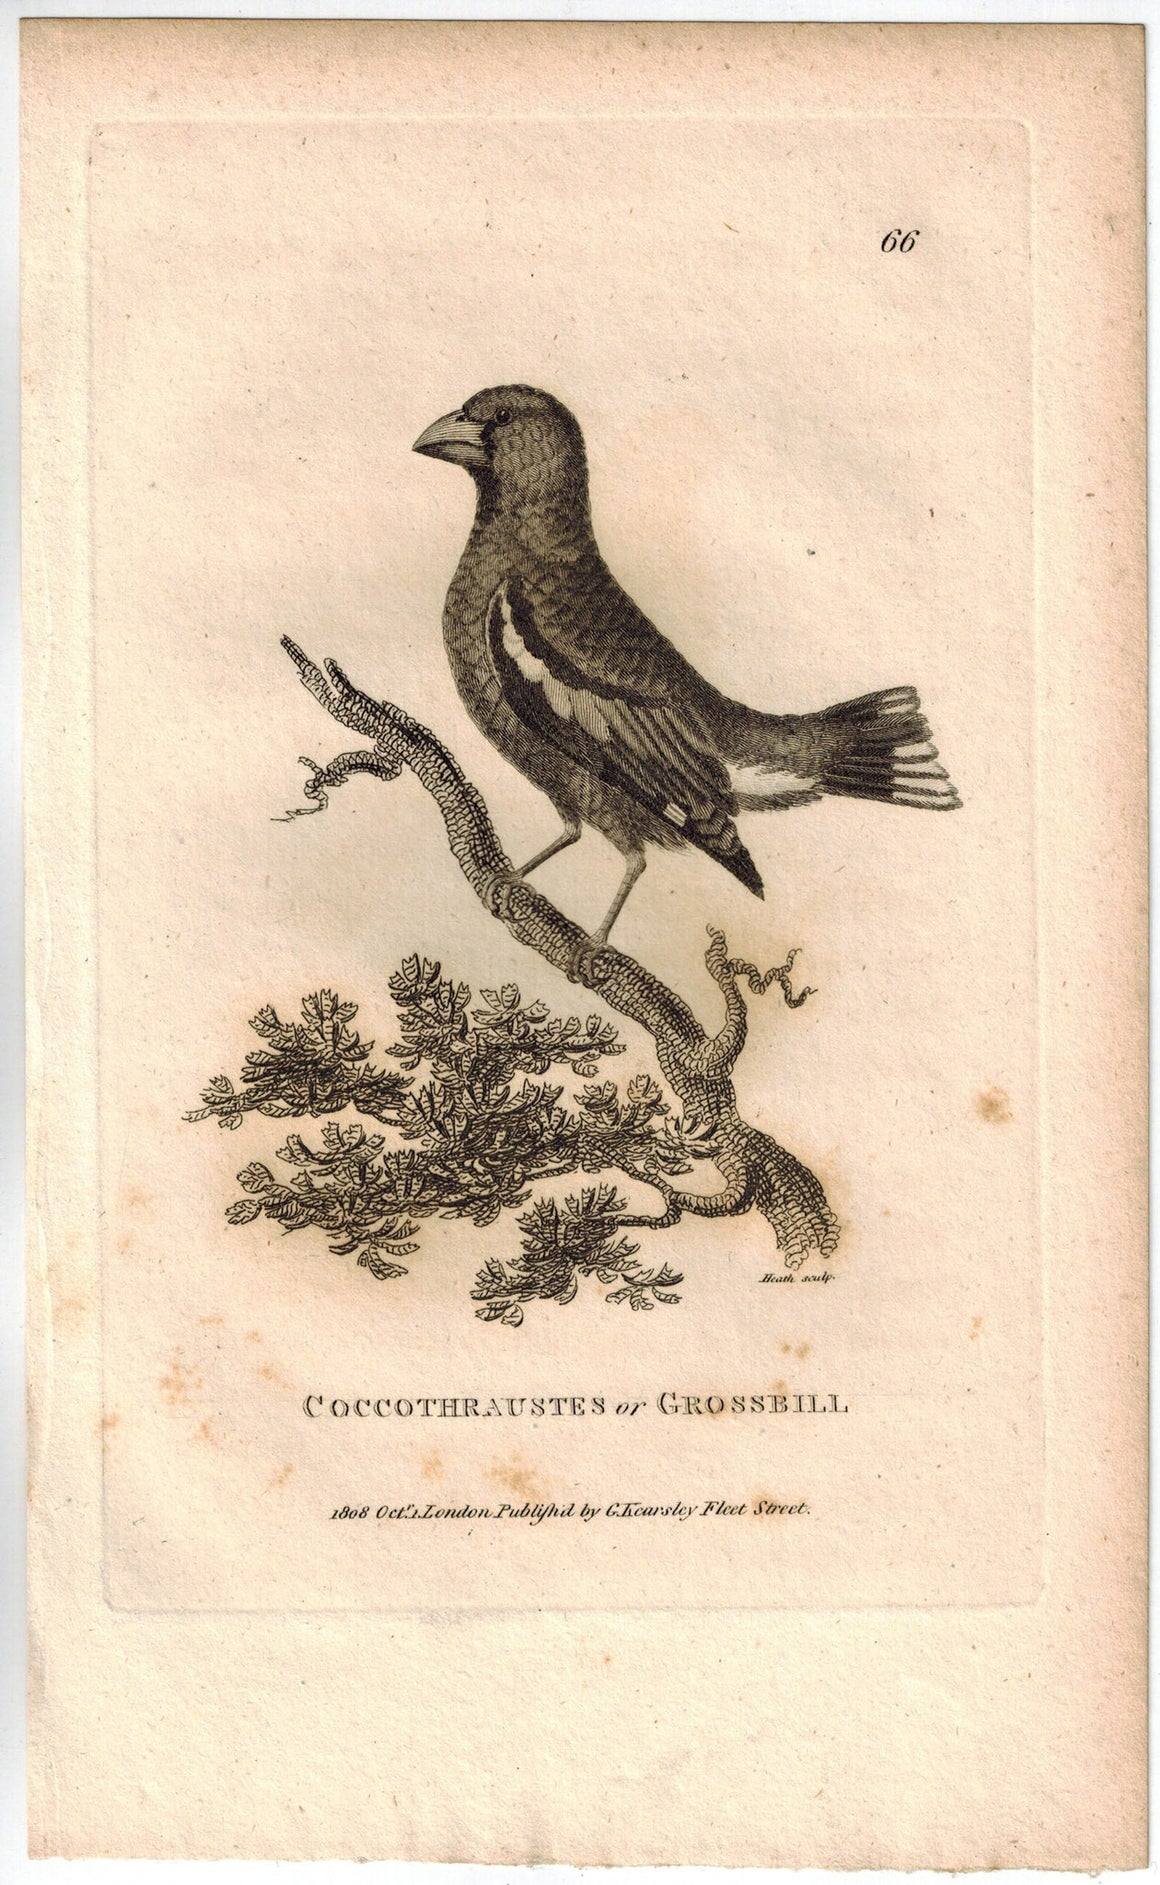 Coccothraustes or Crossbill Bird Print 1809 George Shaw Original Engraving